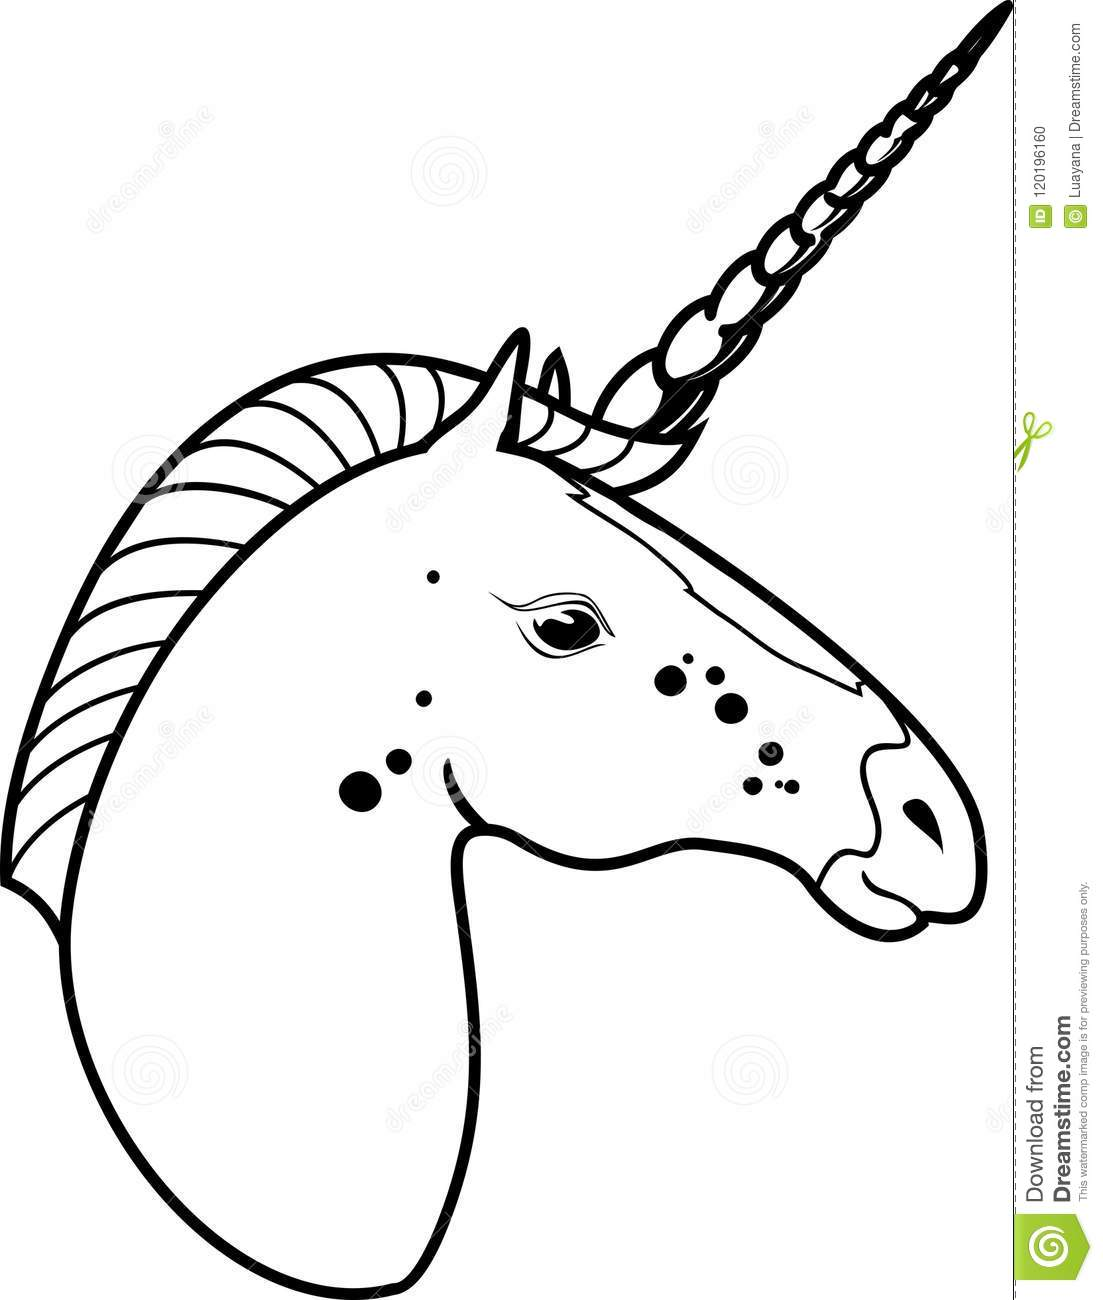 Unicorn Head Coloring Page Stock Vector Illustration Of Fabulous 120196160